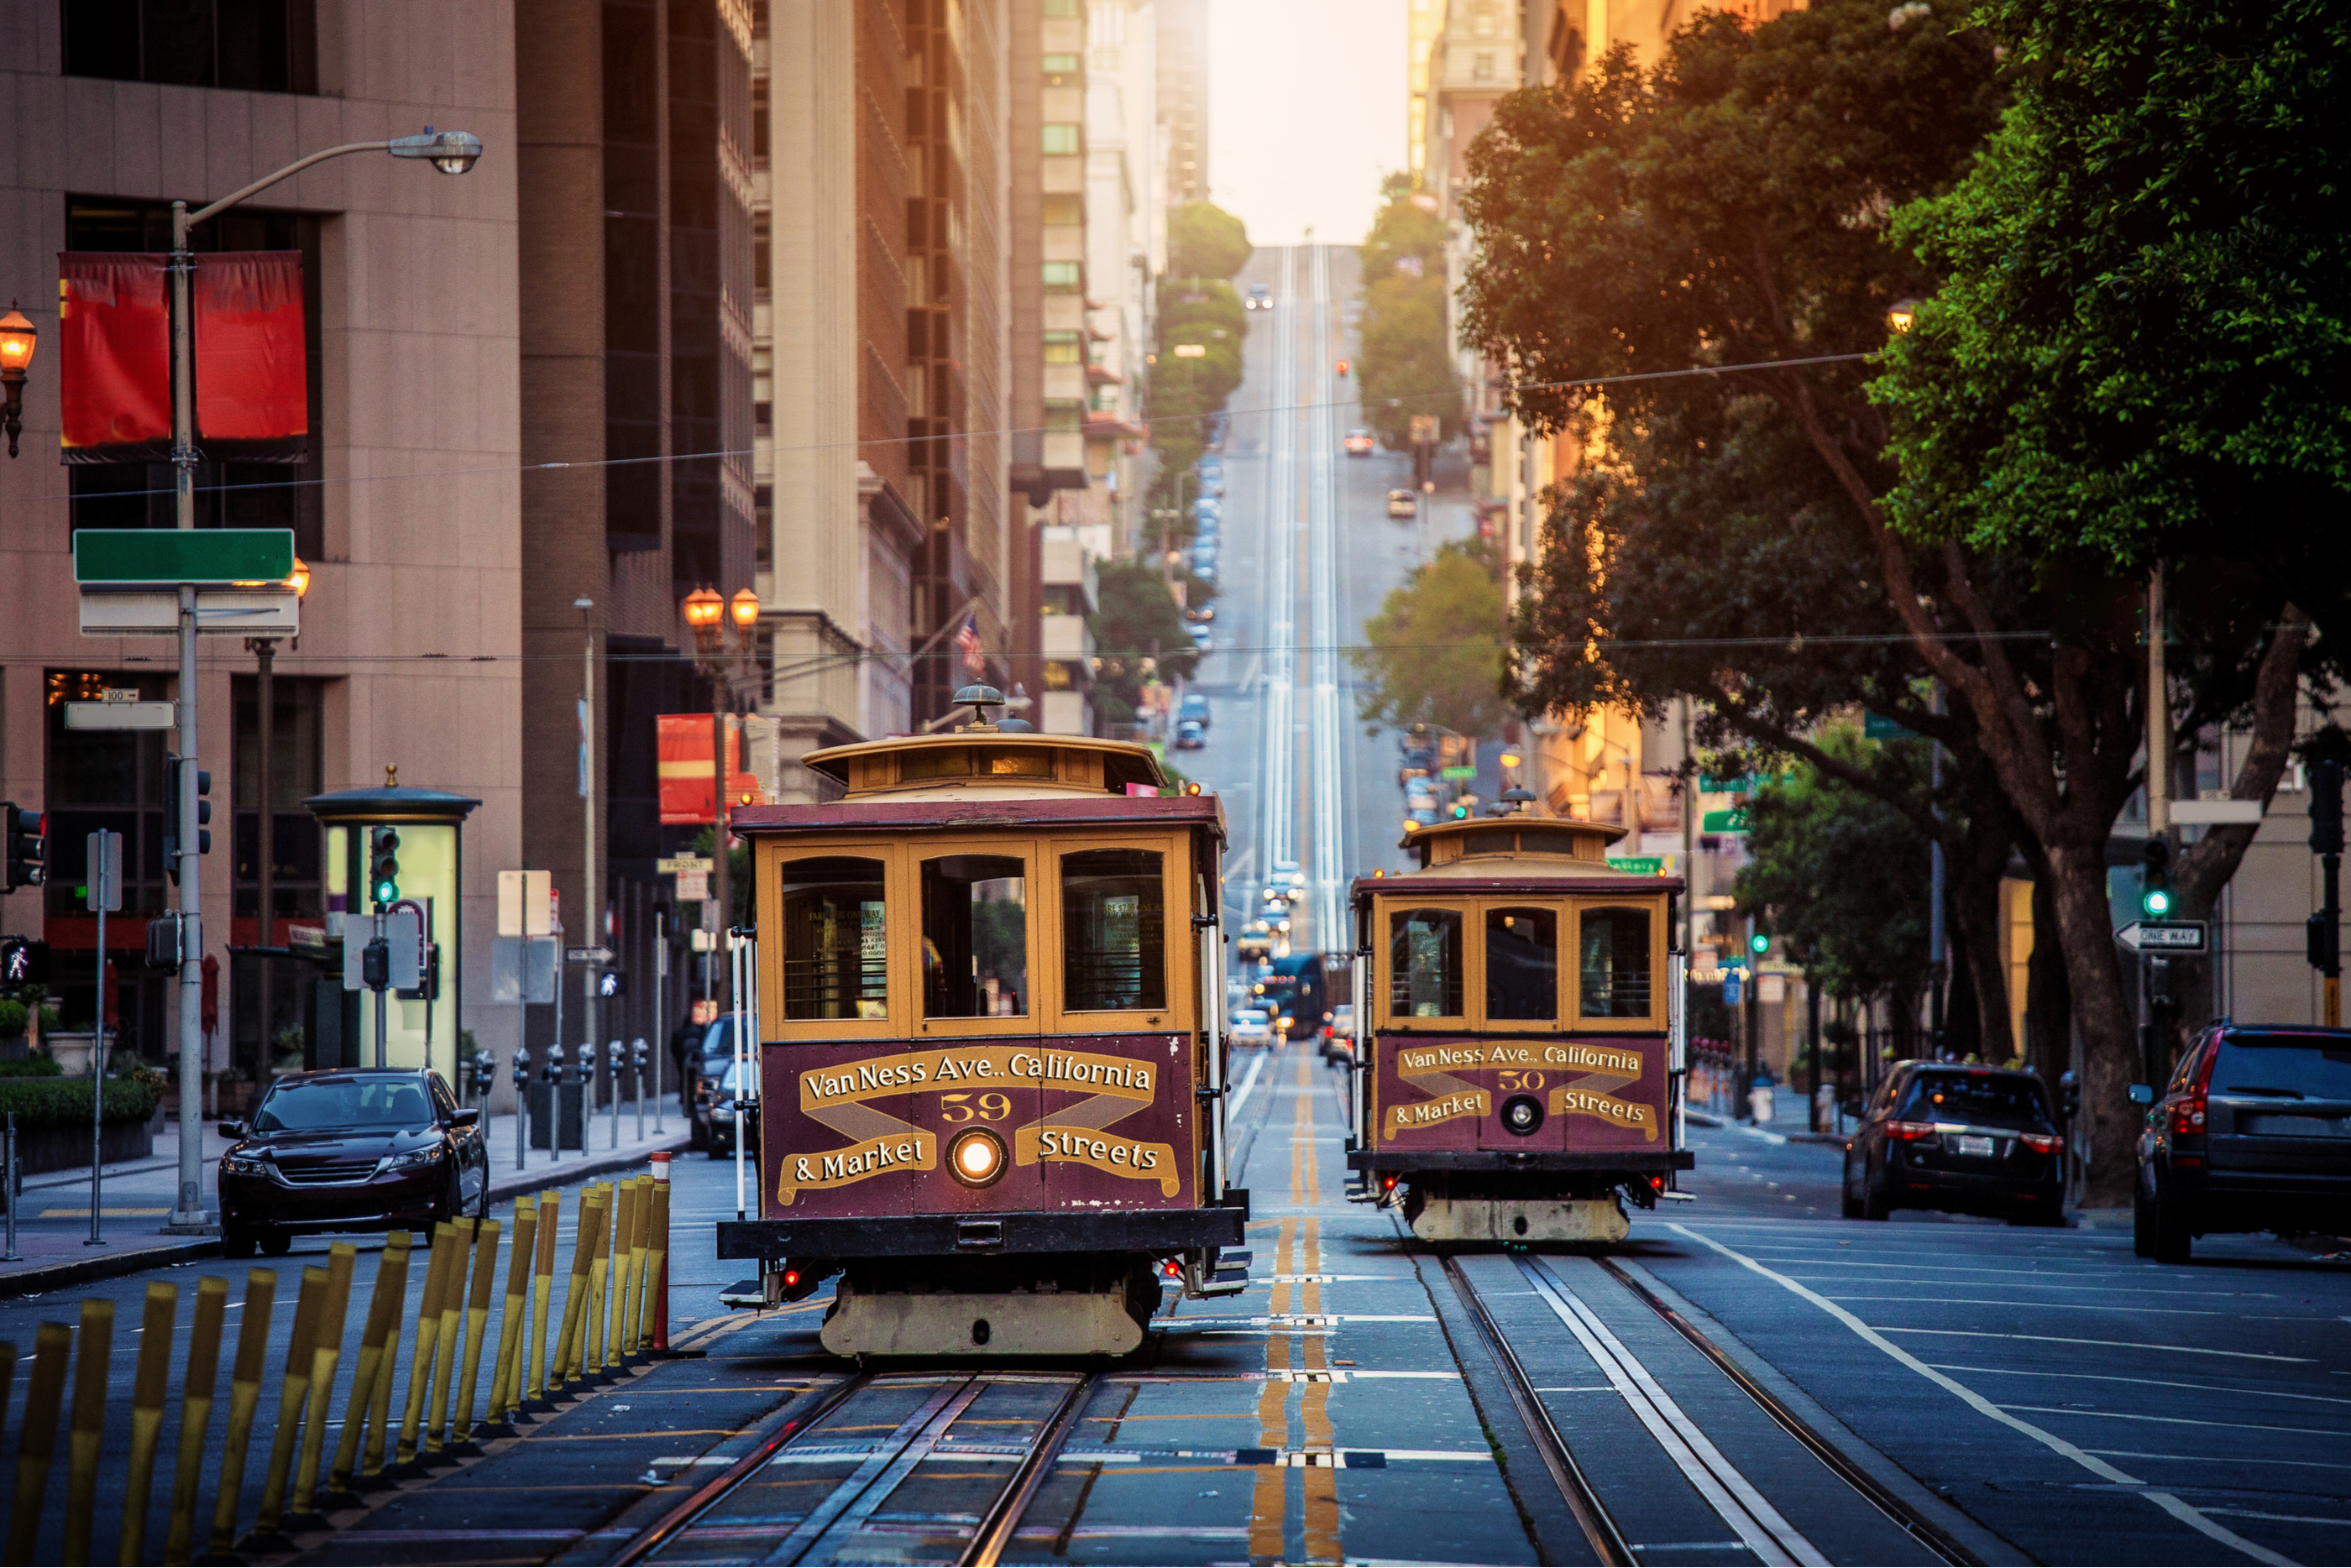 San Francisco, of all cities, may be unprepared forJanuary's statewide cannabis legalization